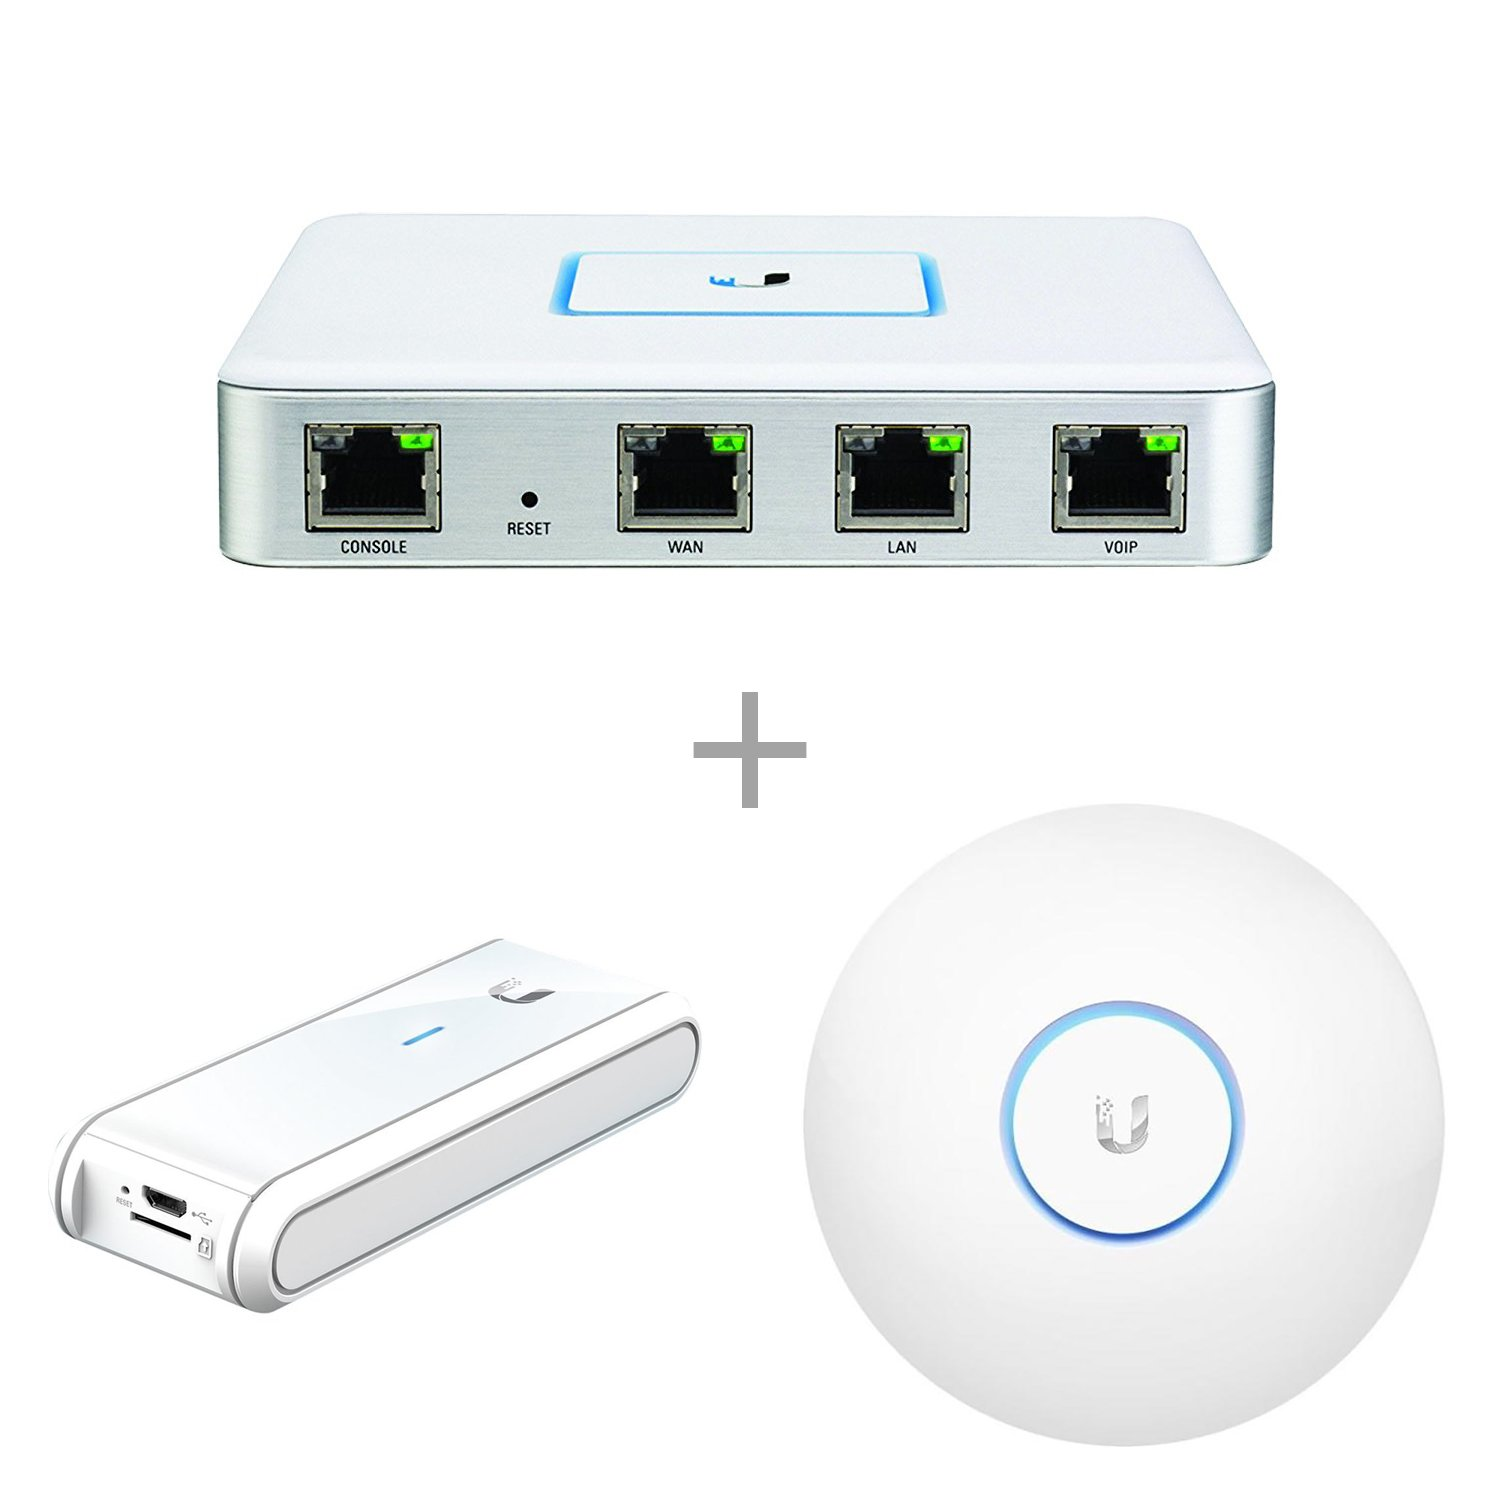 Ubiquiti USG Unifi Security Gateway (1 Item) Bundle with Ubiquiti UC-CK  Unifi Cloud Key - Remote Control Device (1 Item) & Ubiquiti UAP-AC-LR-US  Unifi